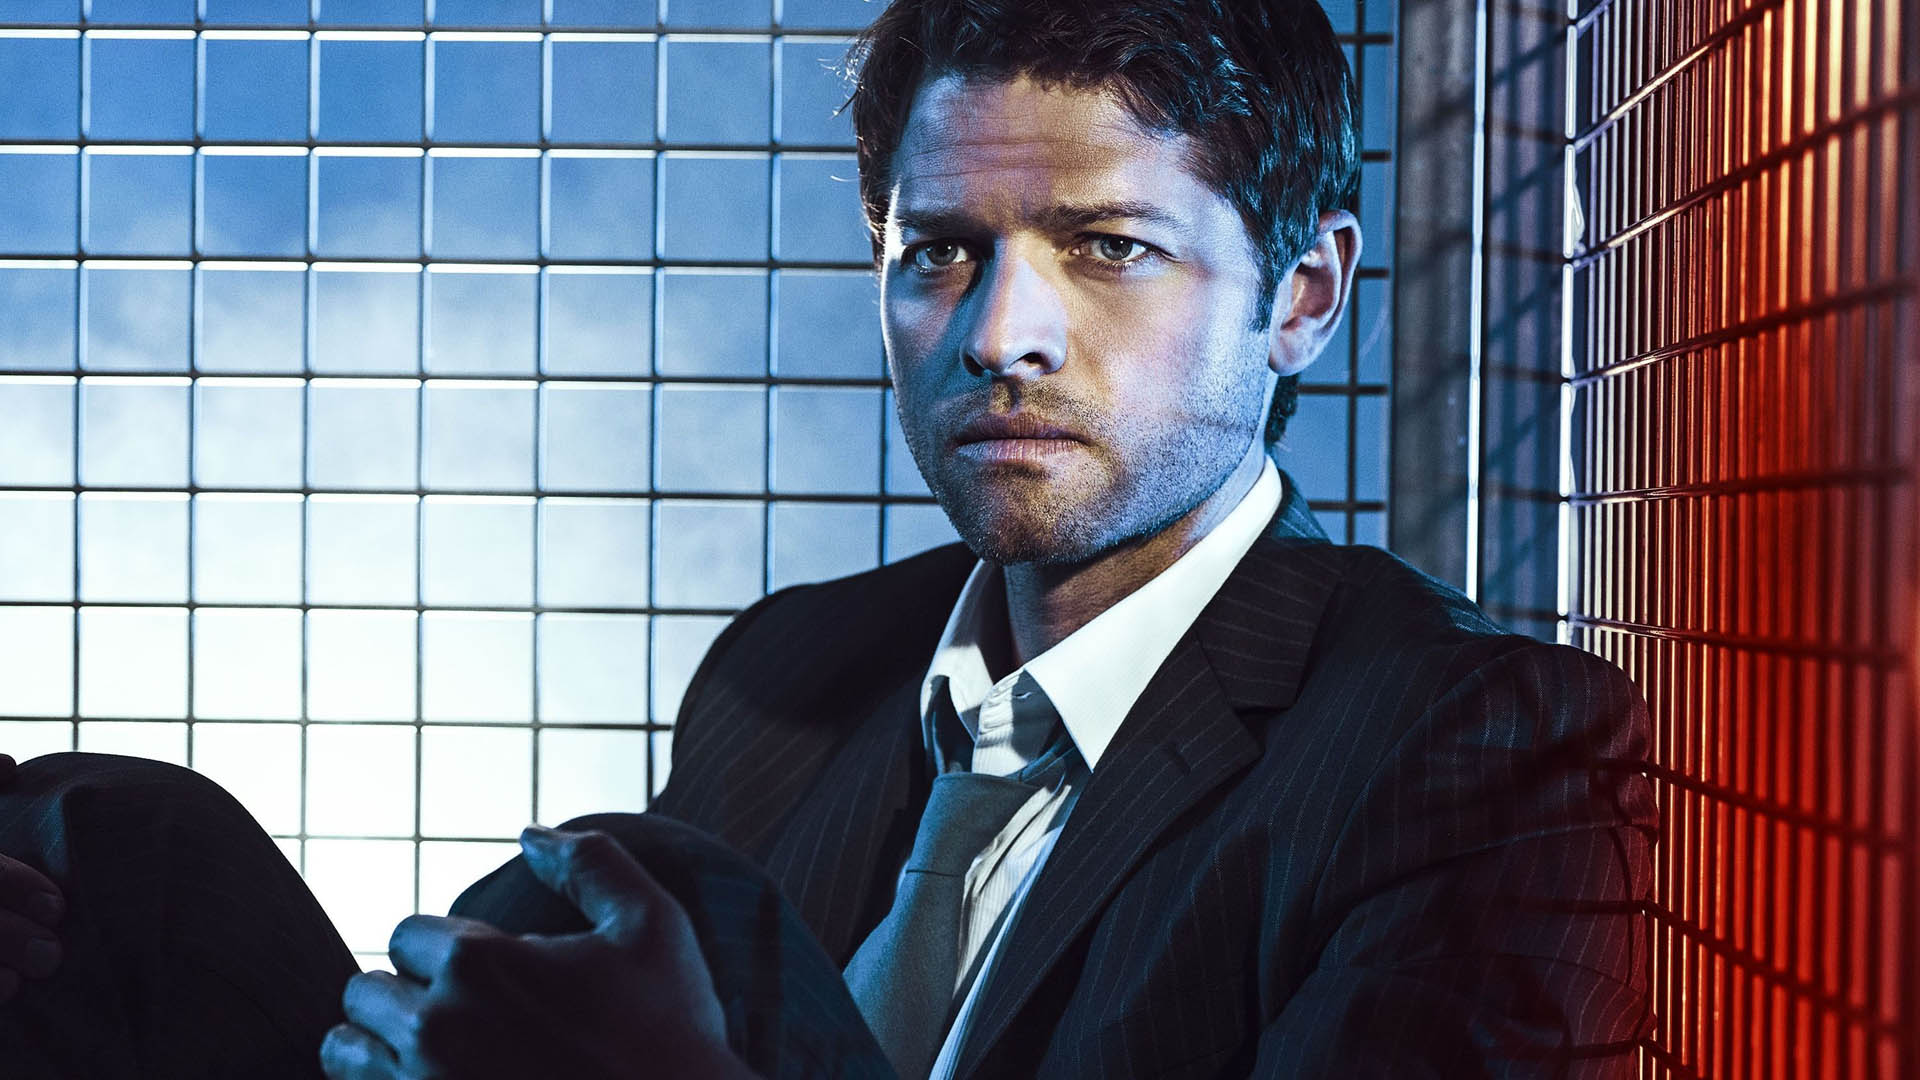 Supernatural hd backgrounds pictures images supernatural hd full hd background voltagebd Gallery